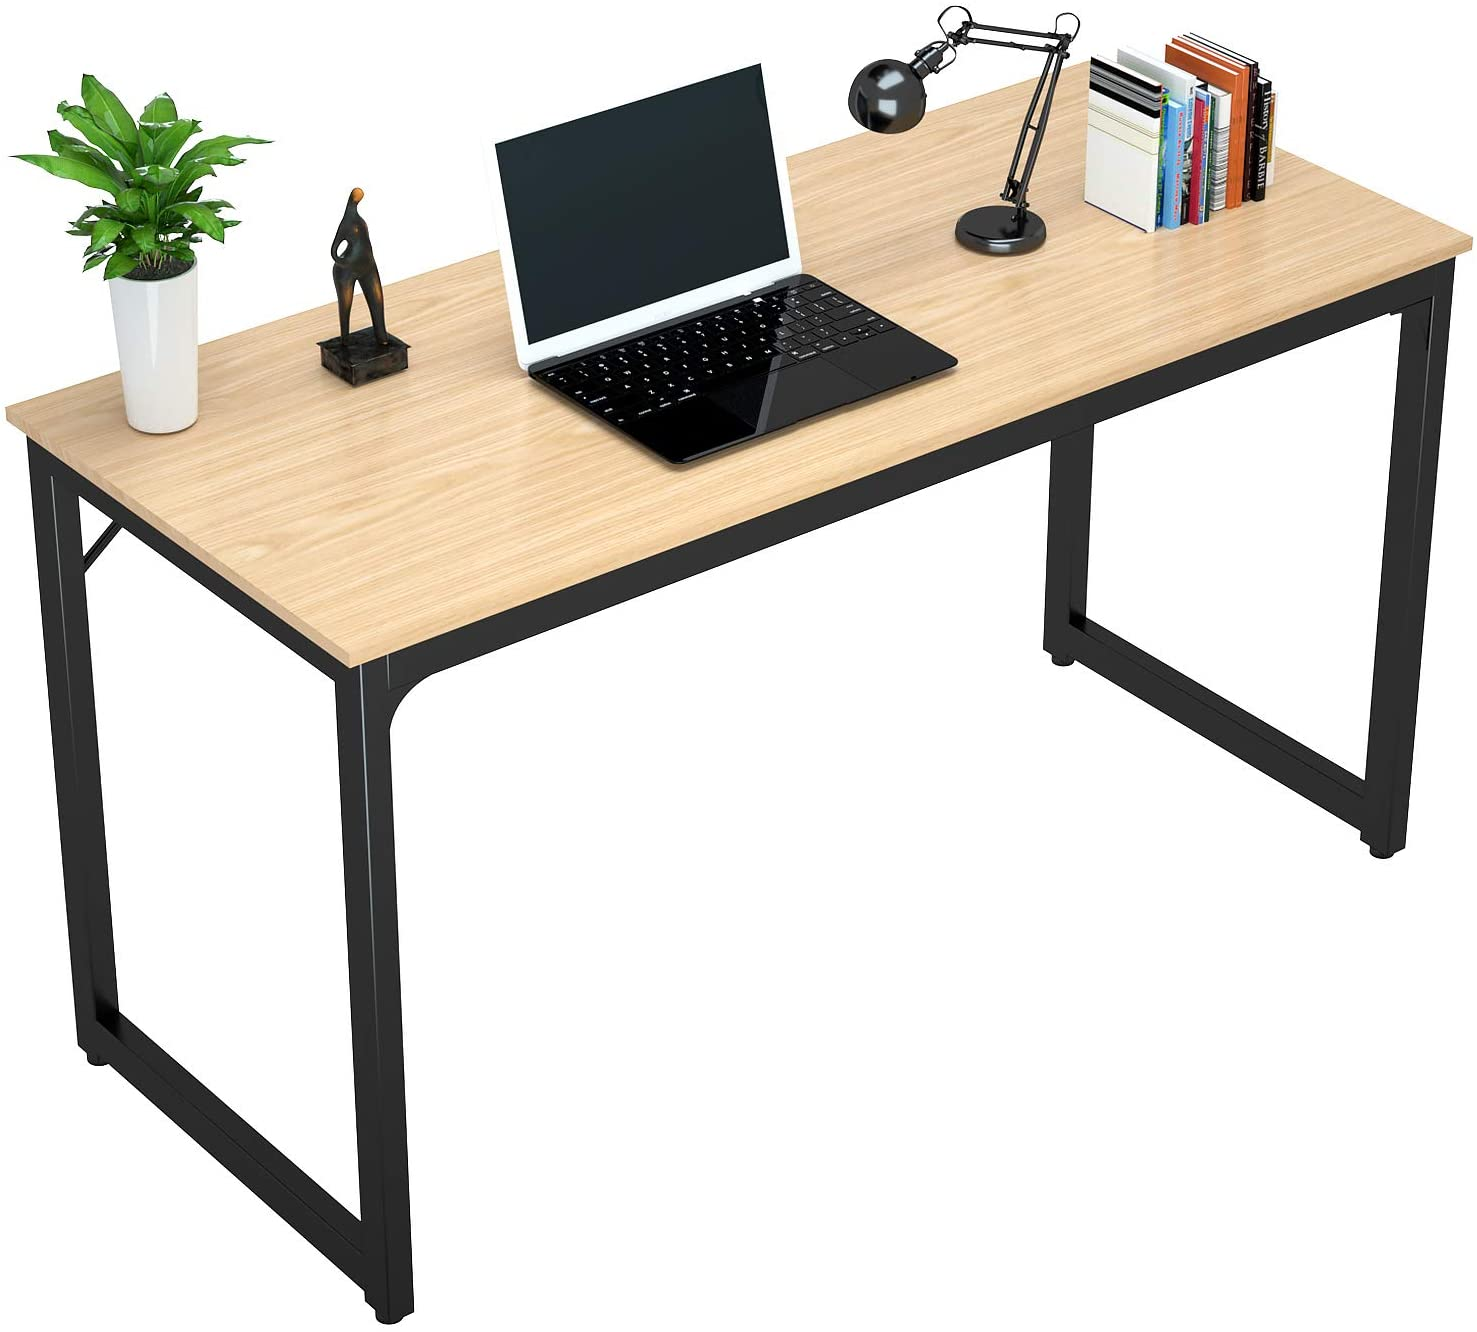 """Foxemart 47"""" Computer Desk Modern Sturdy Office Desk PC Laptop Notebook Study Writing Table for Home Office Workstation, Natural"""